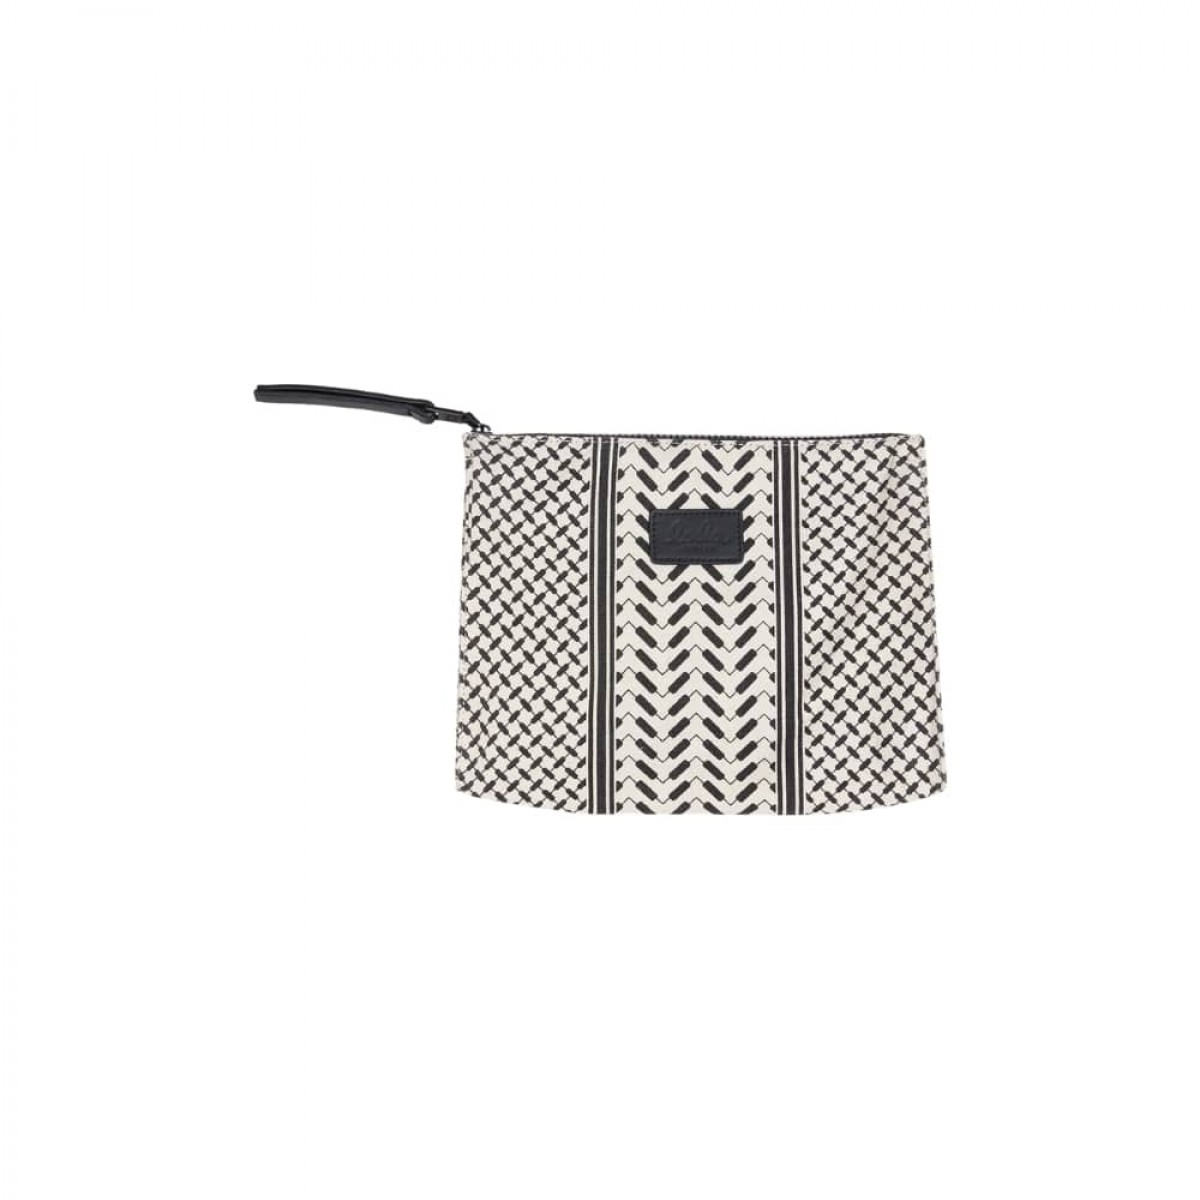 cosmetic bag pili - off white/black - front